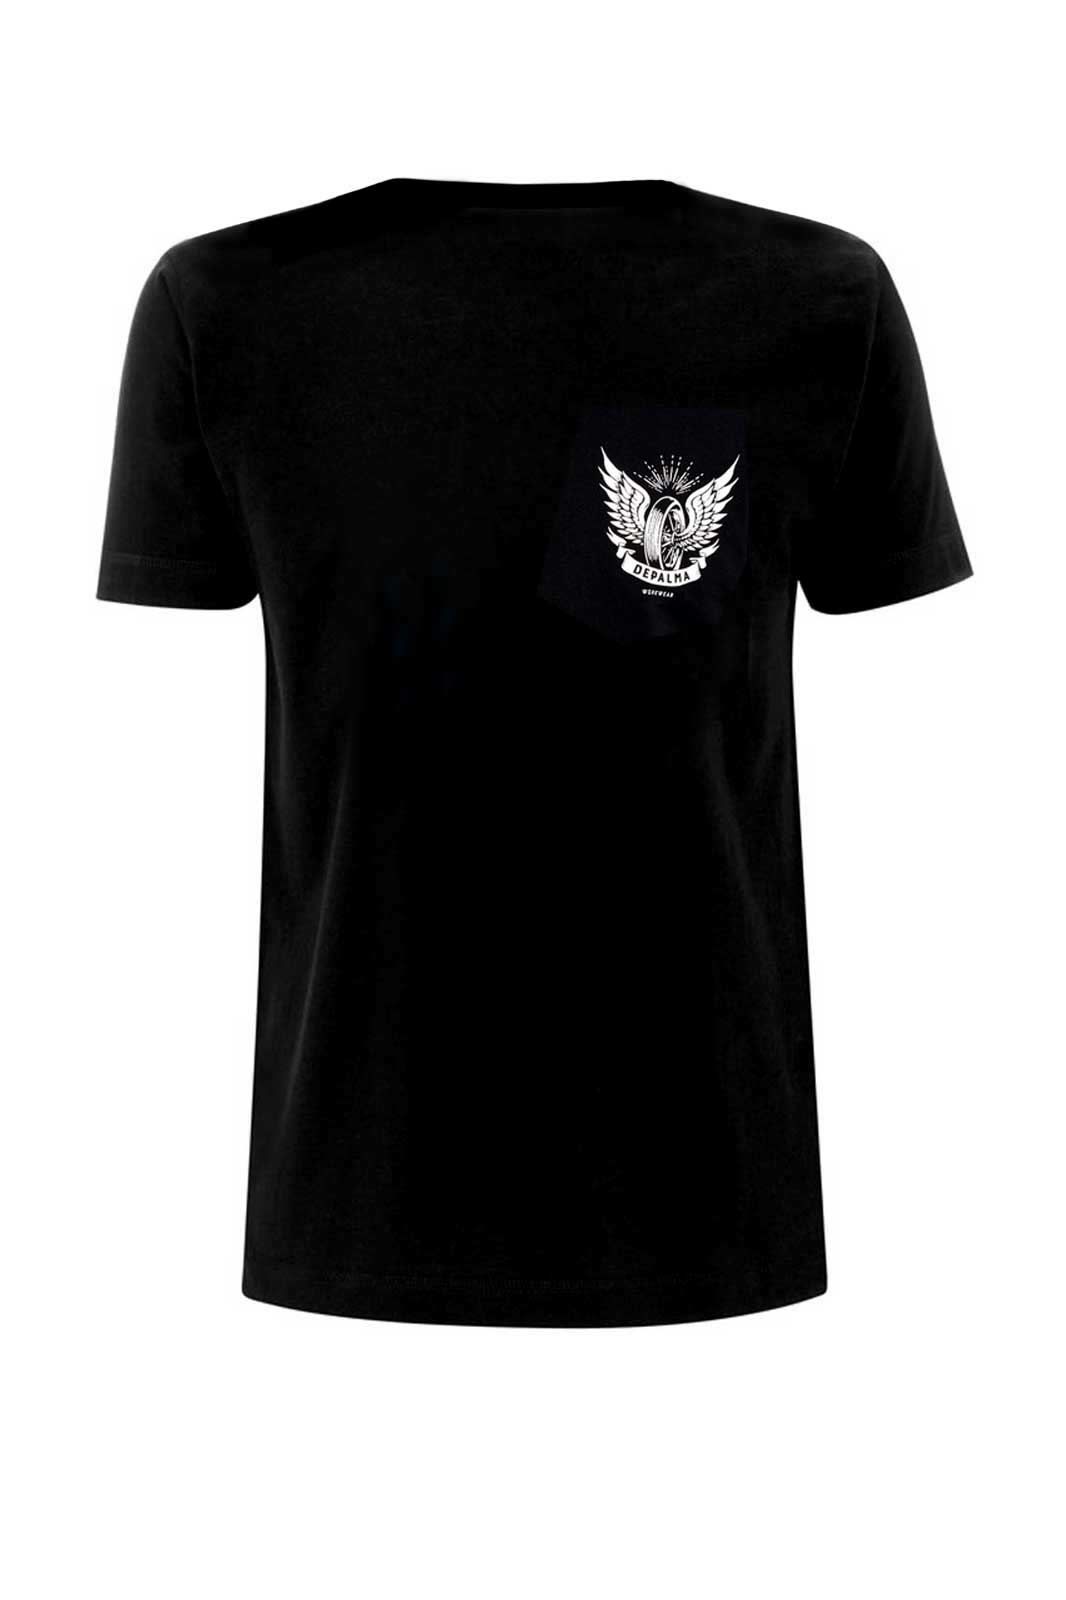 Thunder Road T-shirt Black